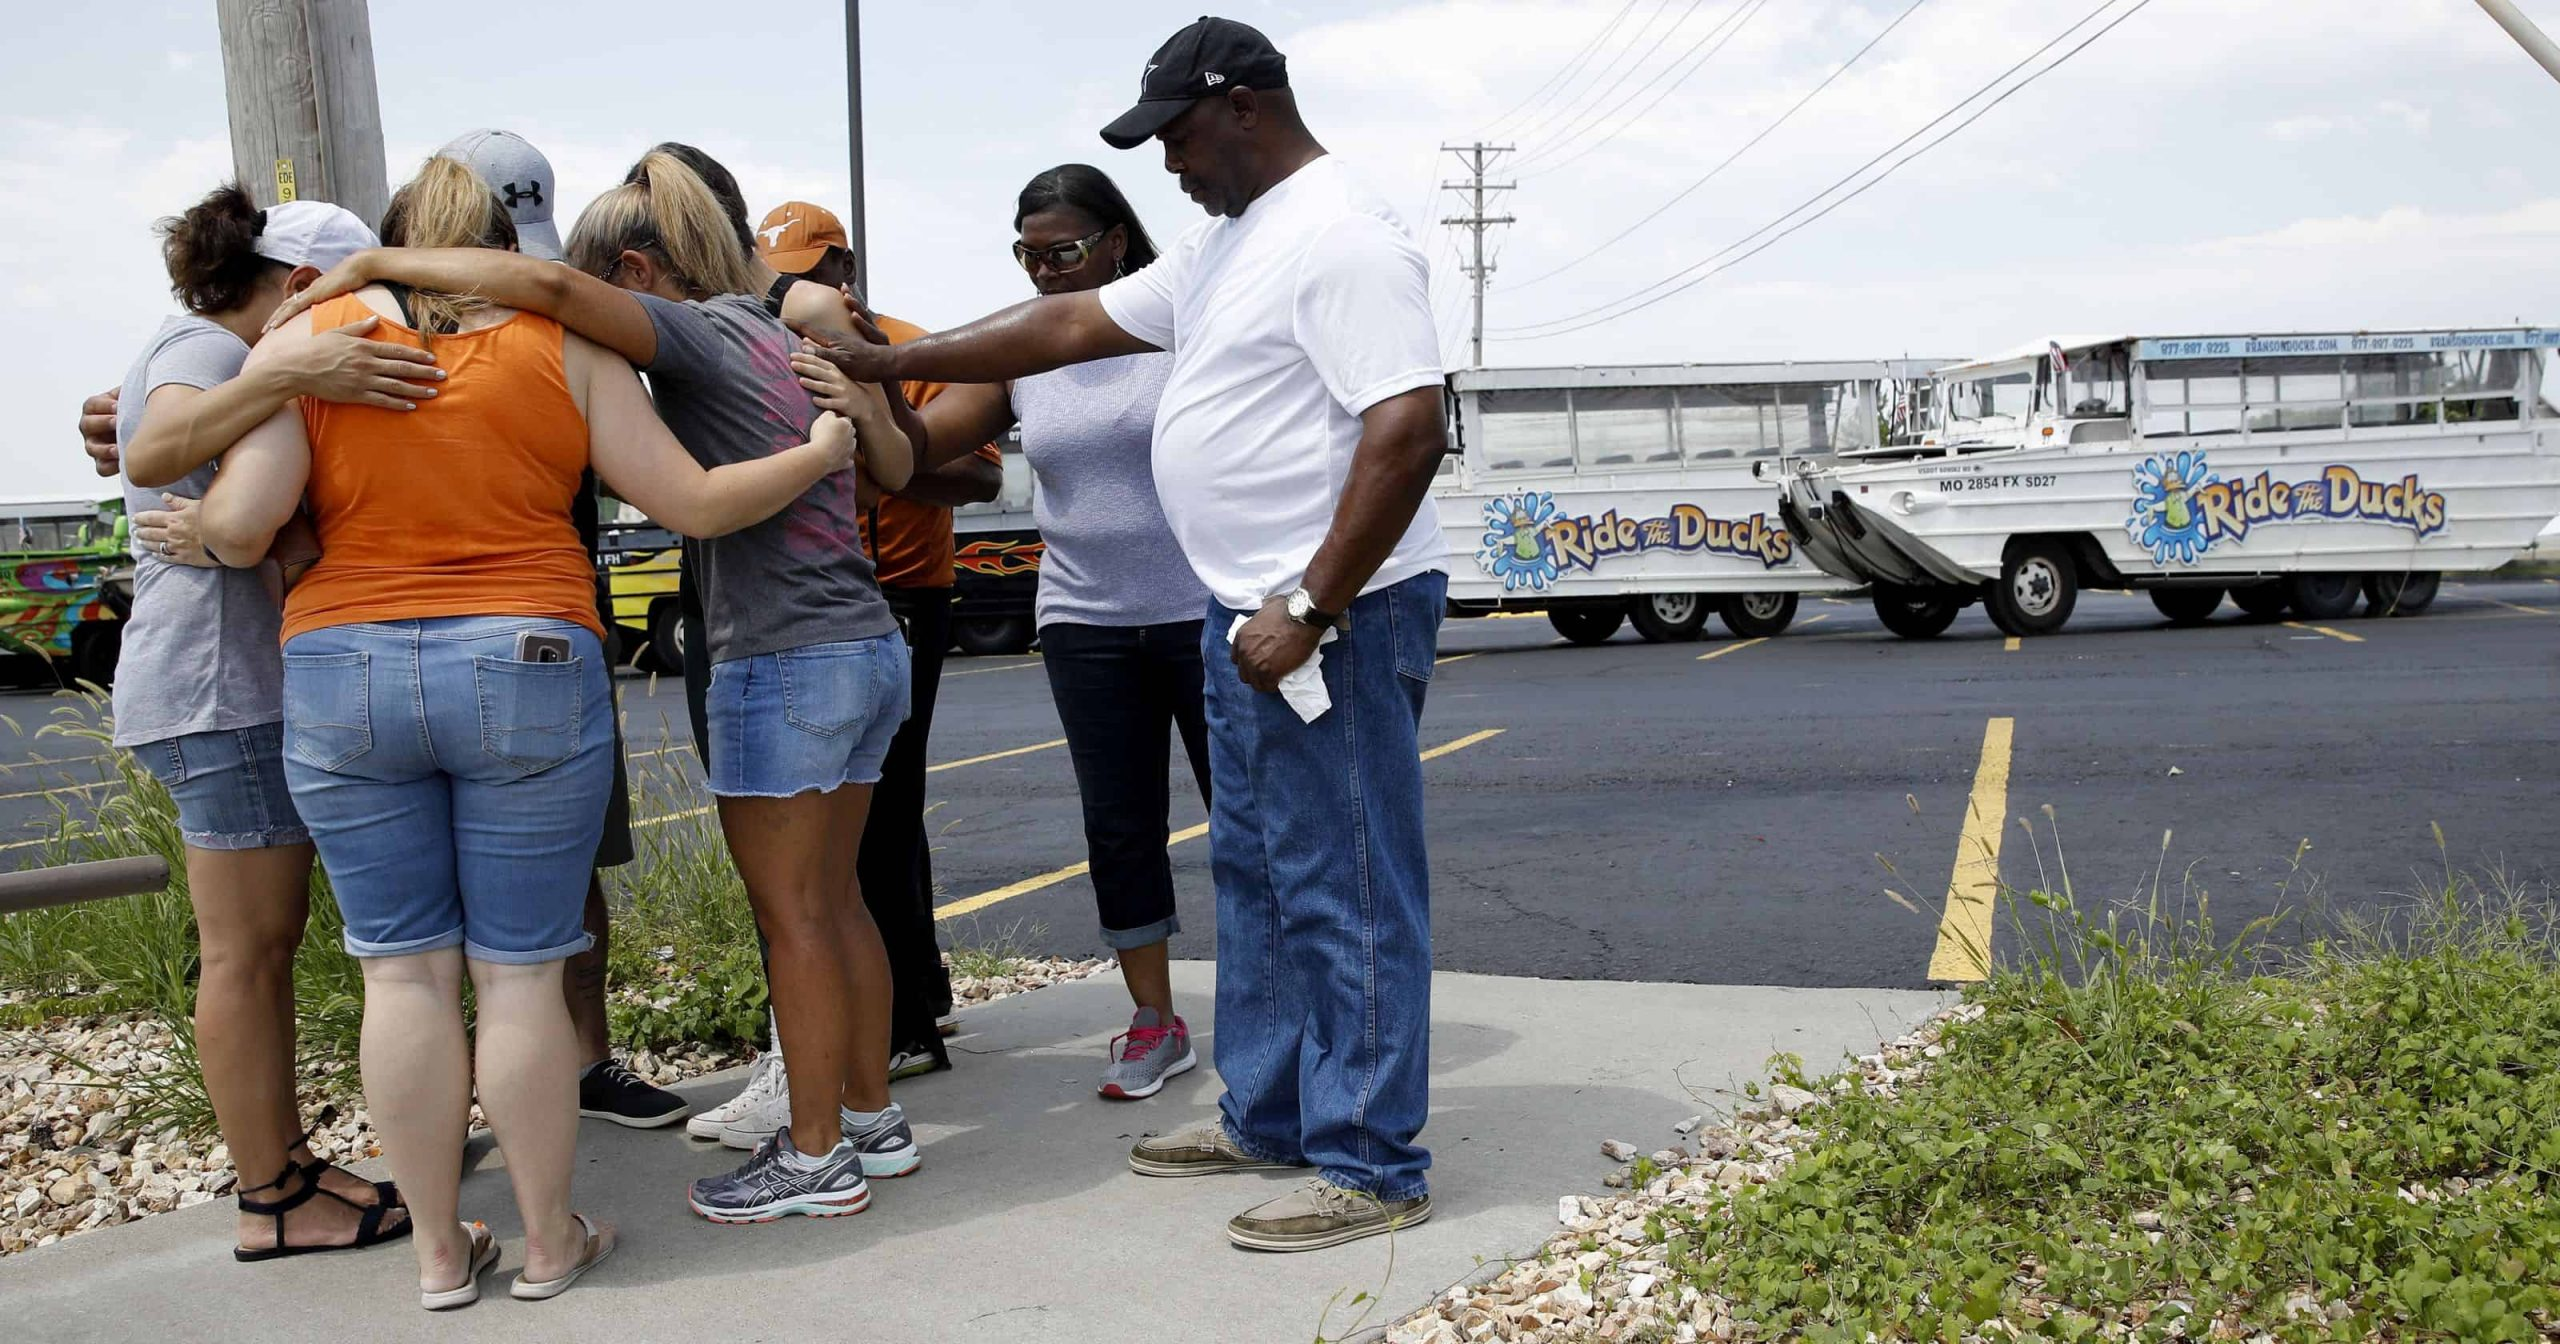 9 family members among the 17 dead in Missouri duck boat accident